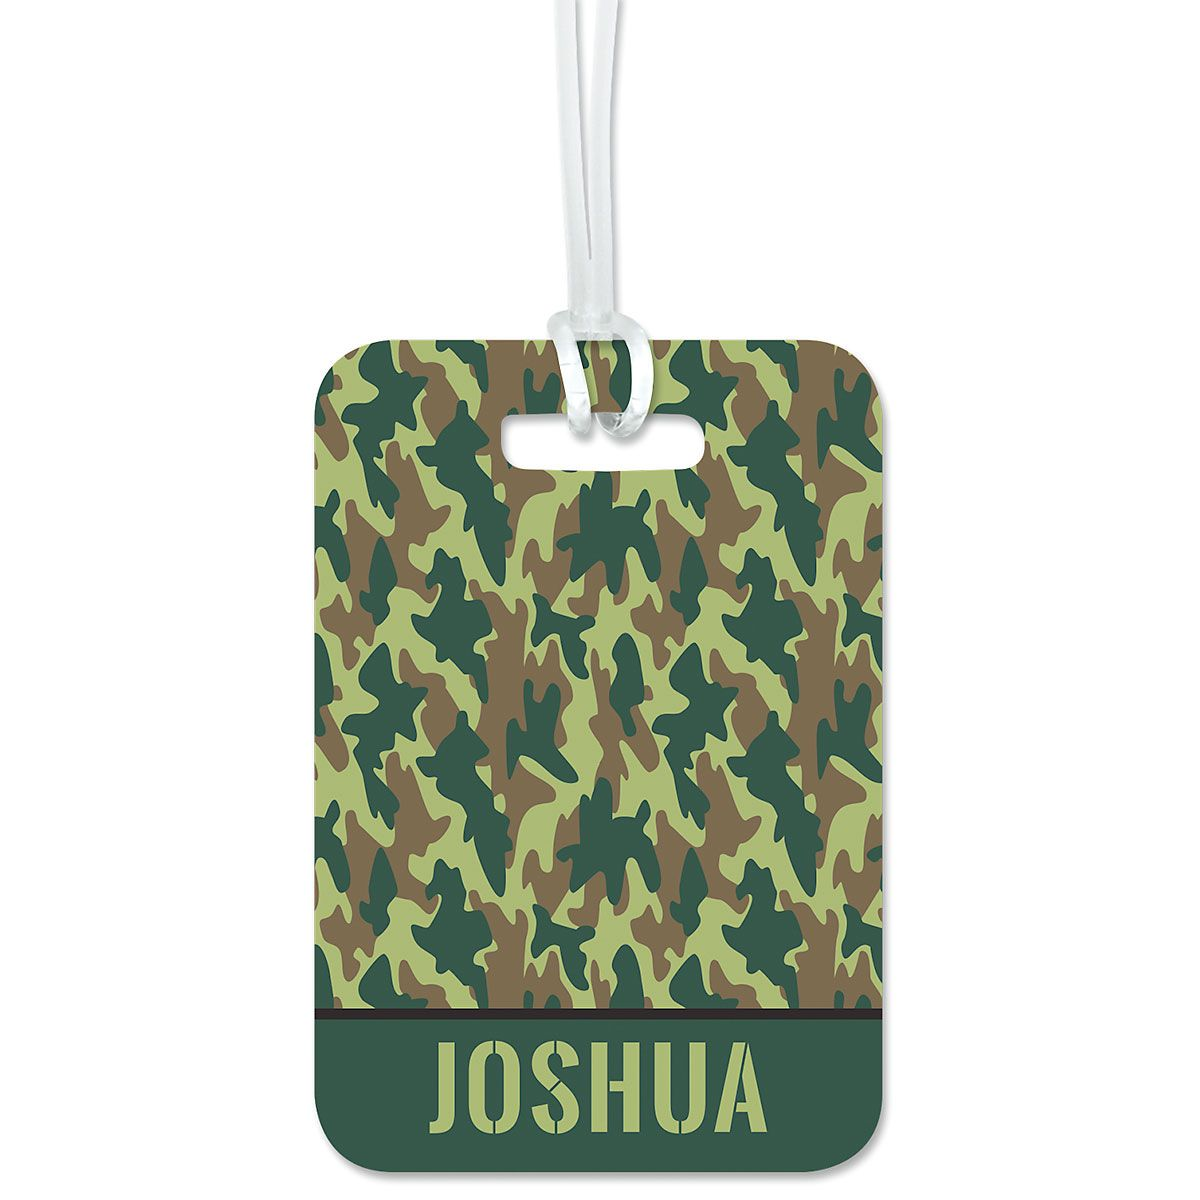 Green Camo Personalized Luggage Tag